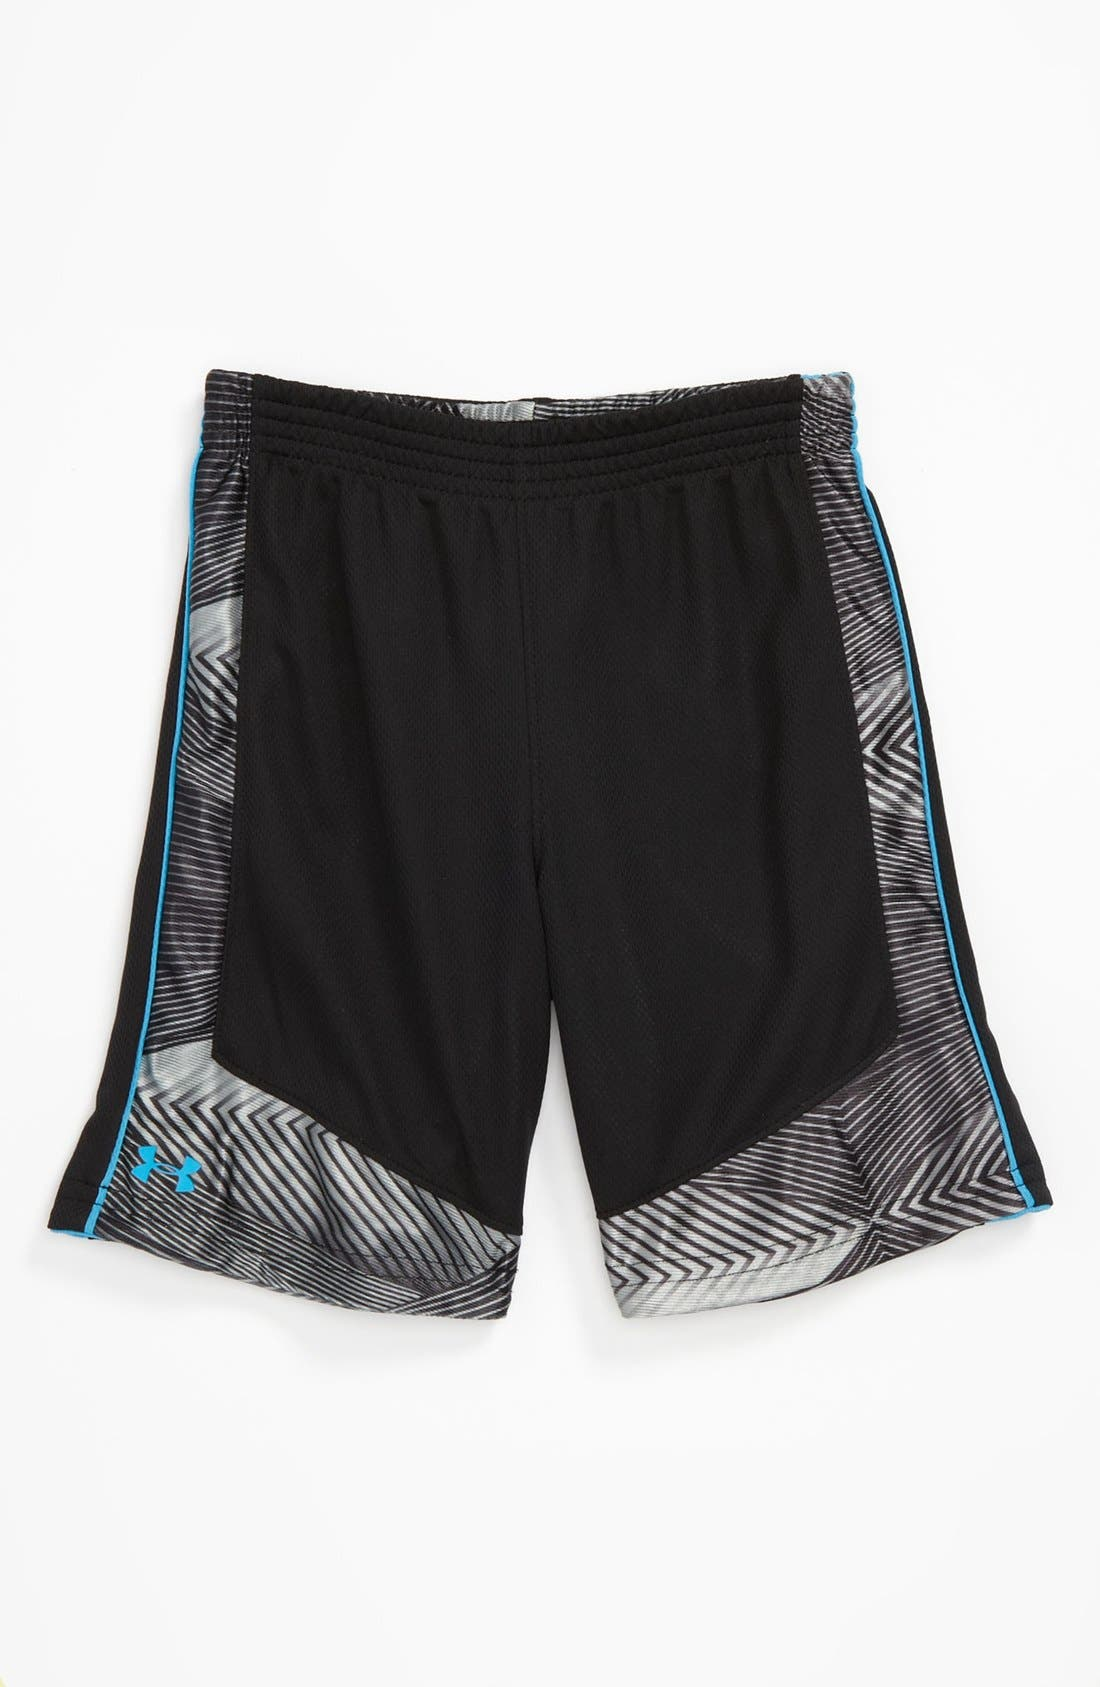 Alternate Image 1 Selected - Under Armour HeatGear® Reversible Shorts (Toddler)